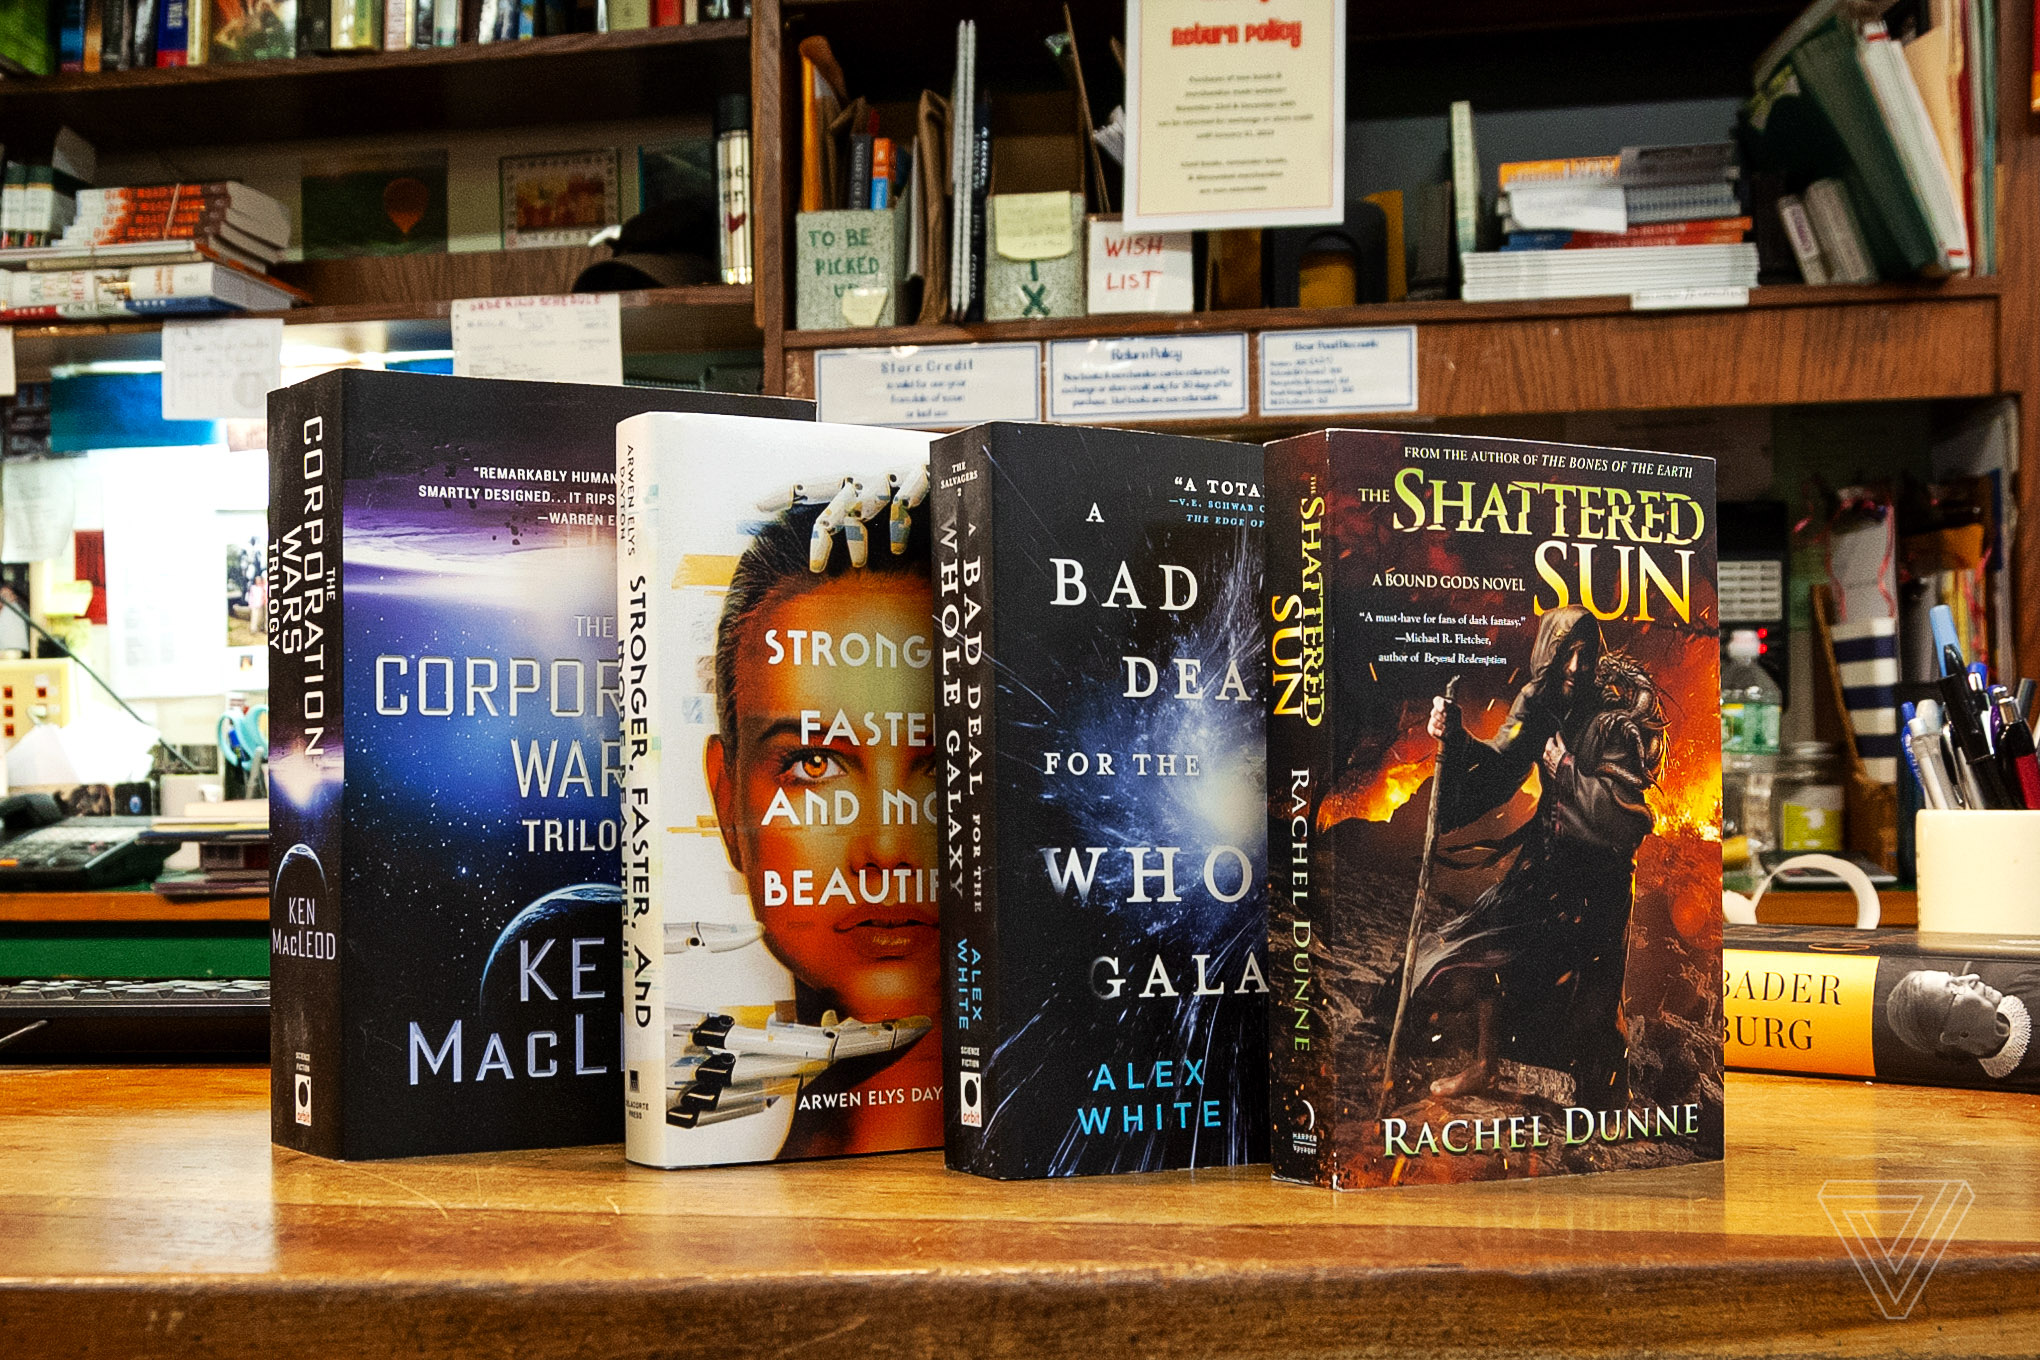 10 new science fiction and fantasy books to check out this